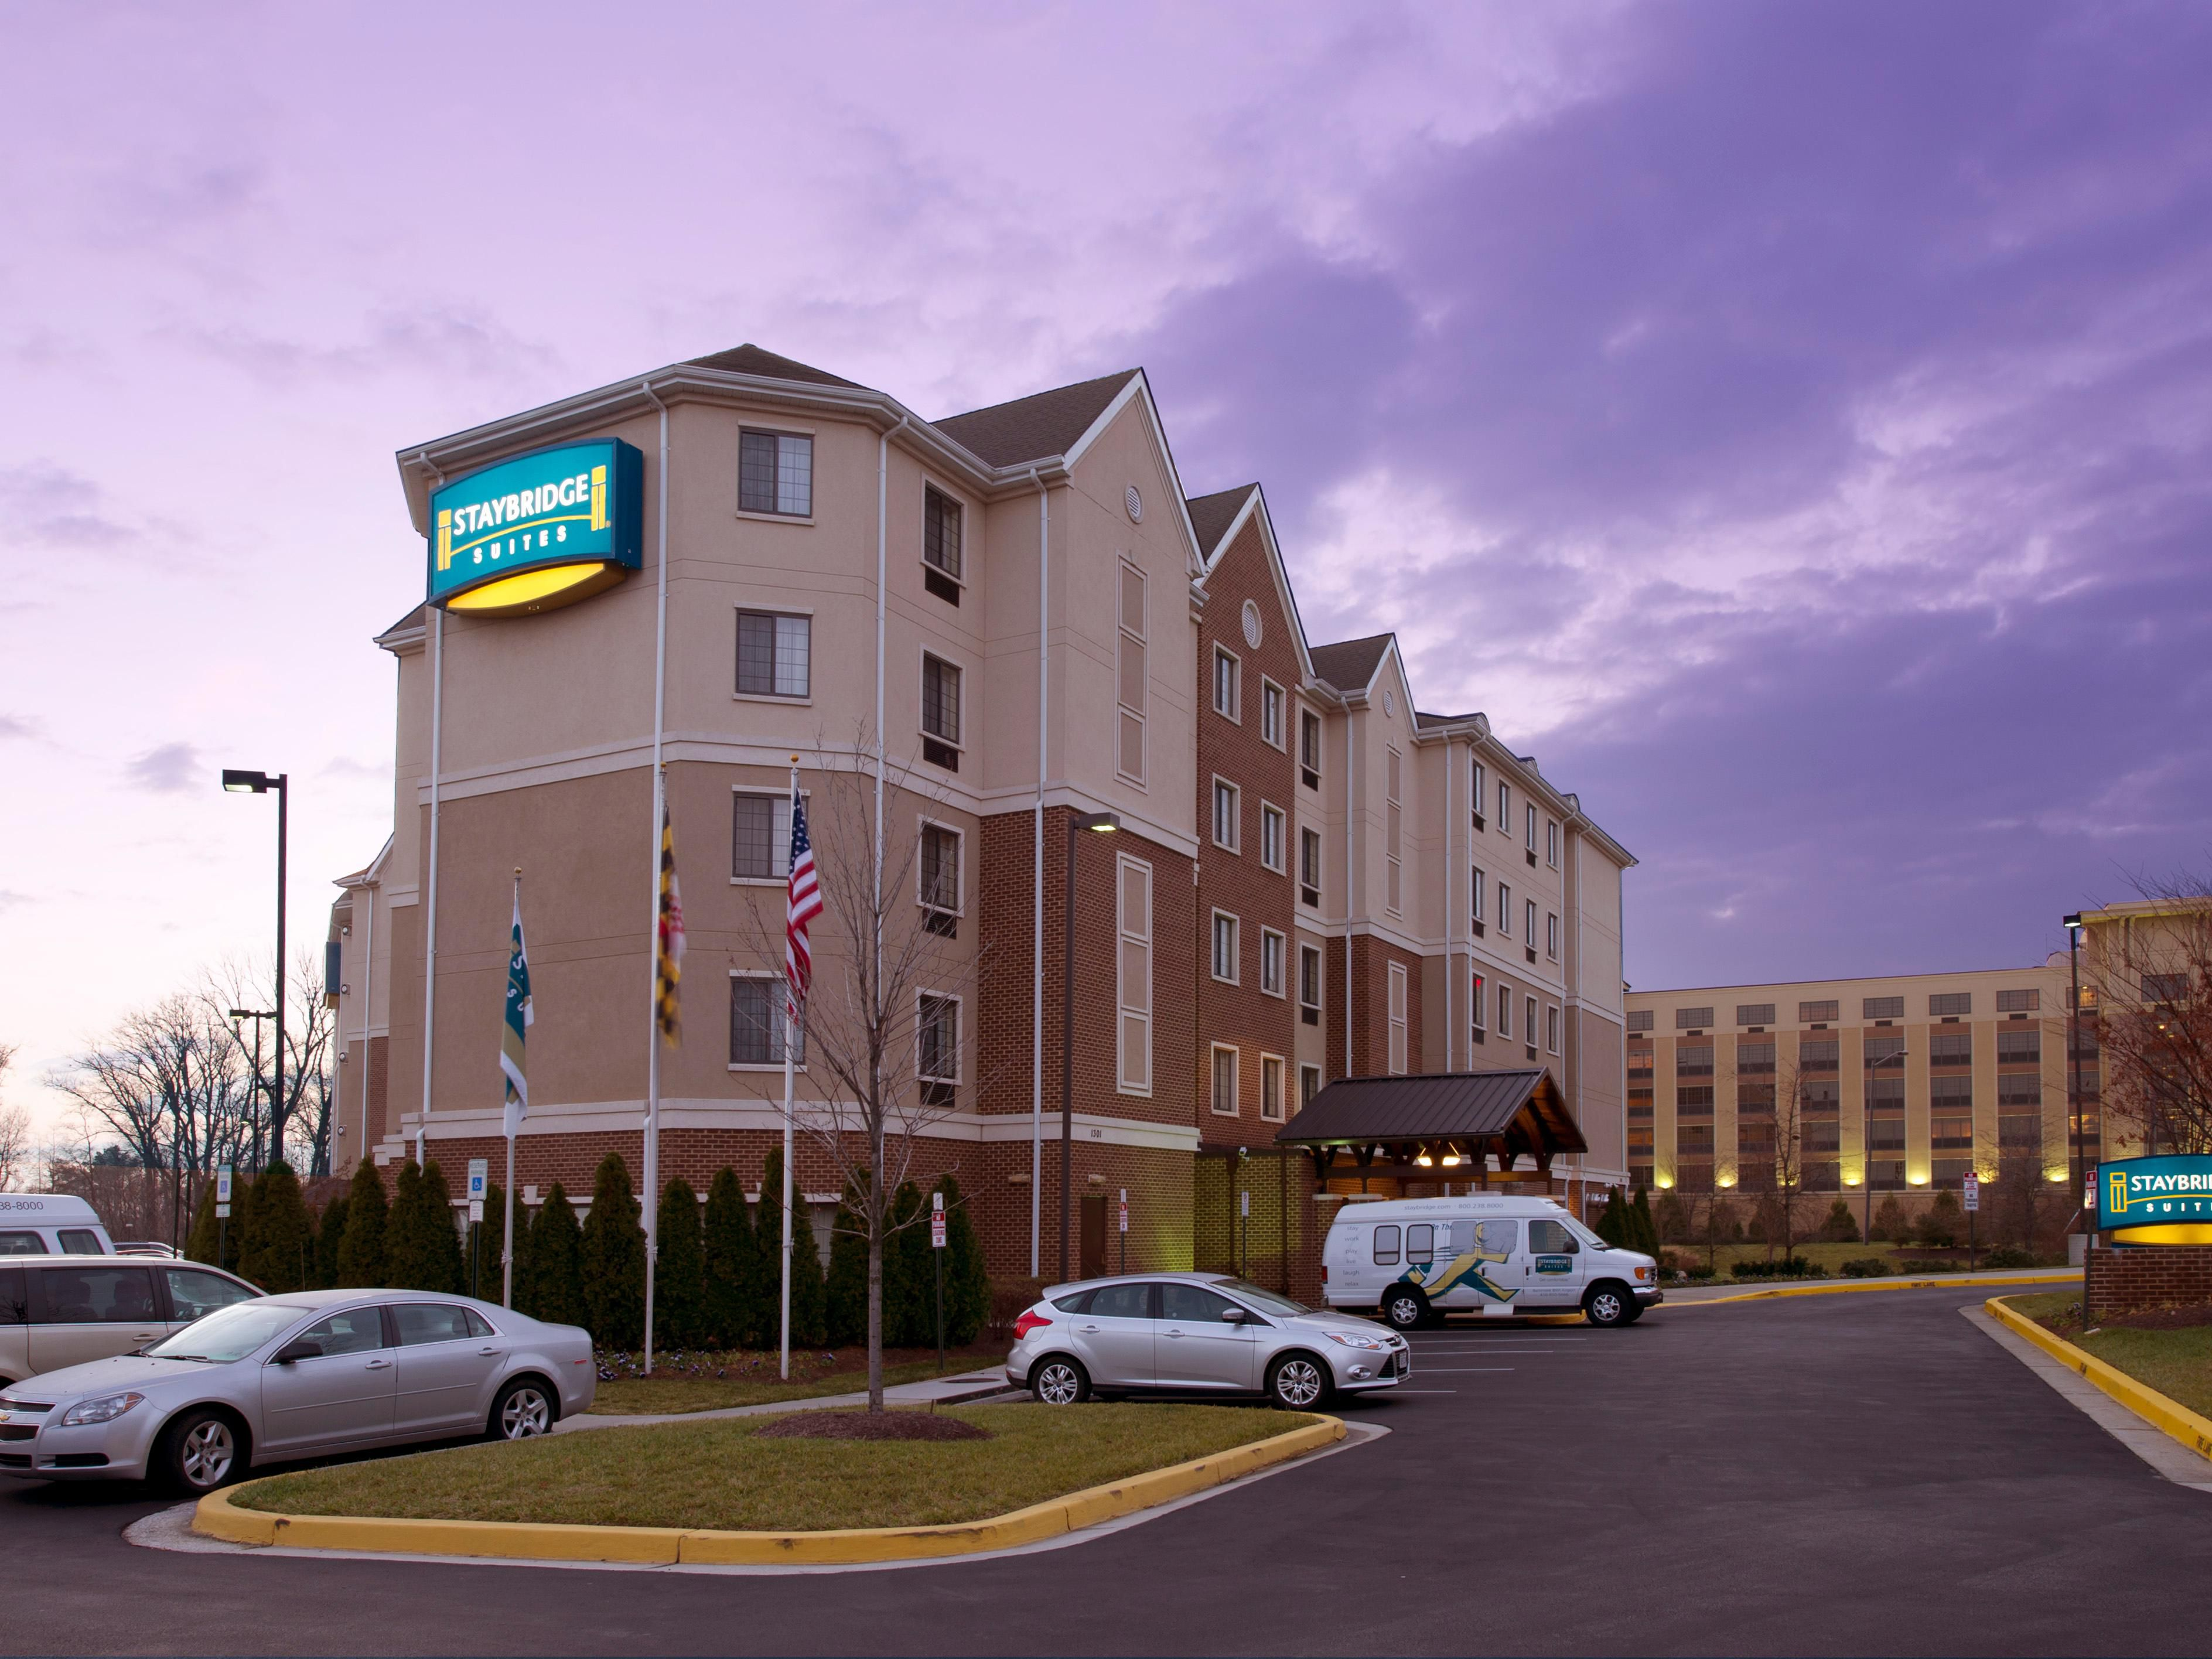 Linthi Hotels Staybridge Suites Baltimore Bwi Airport Extended Stay Hotel In Maryland